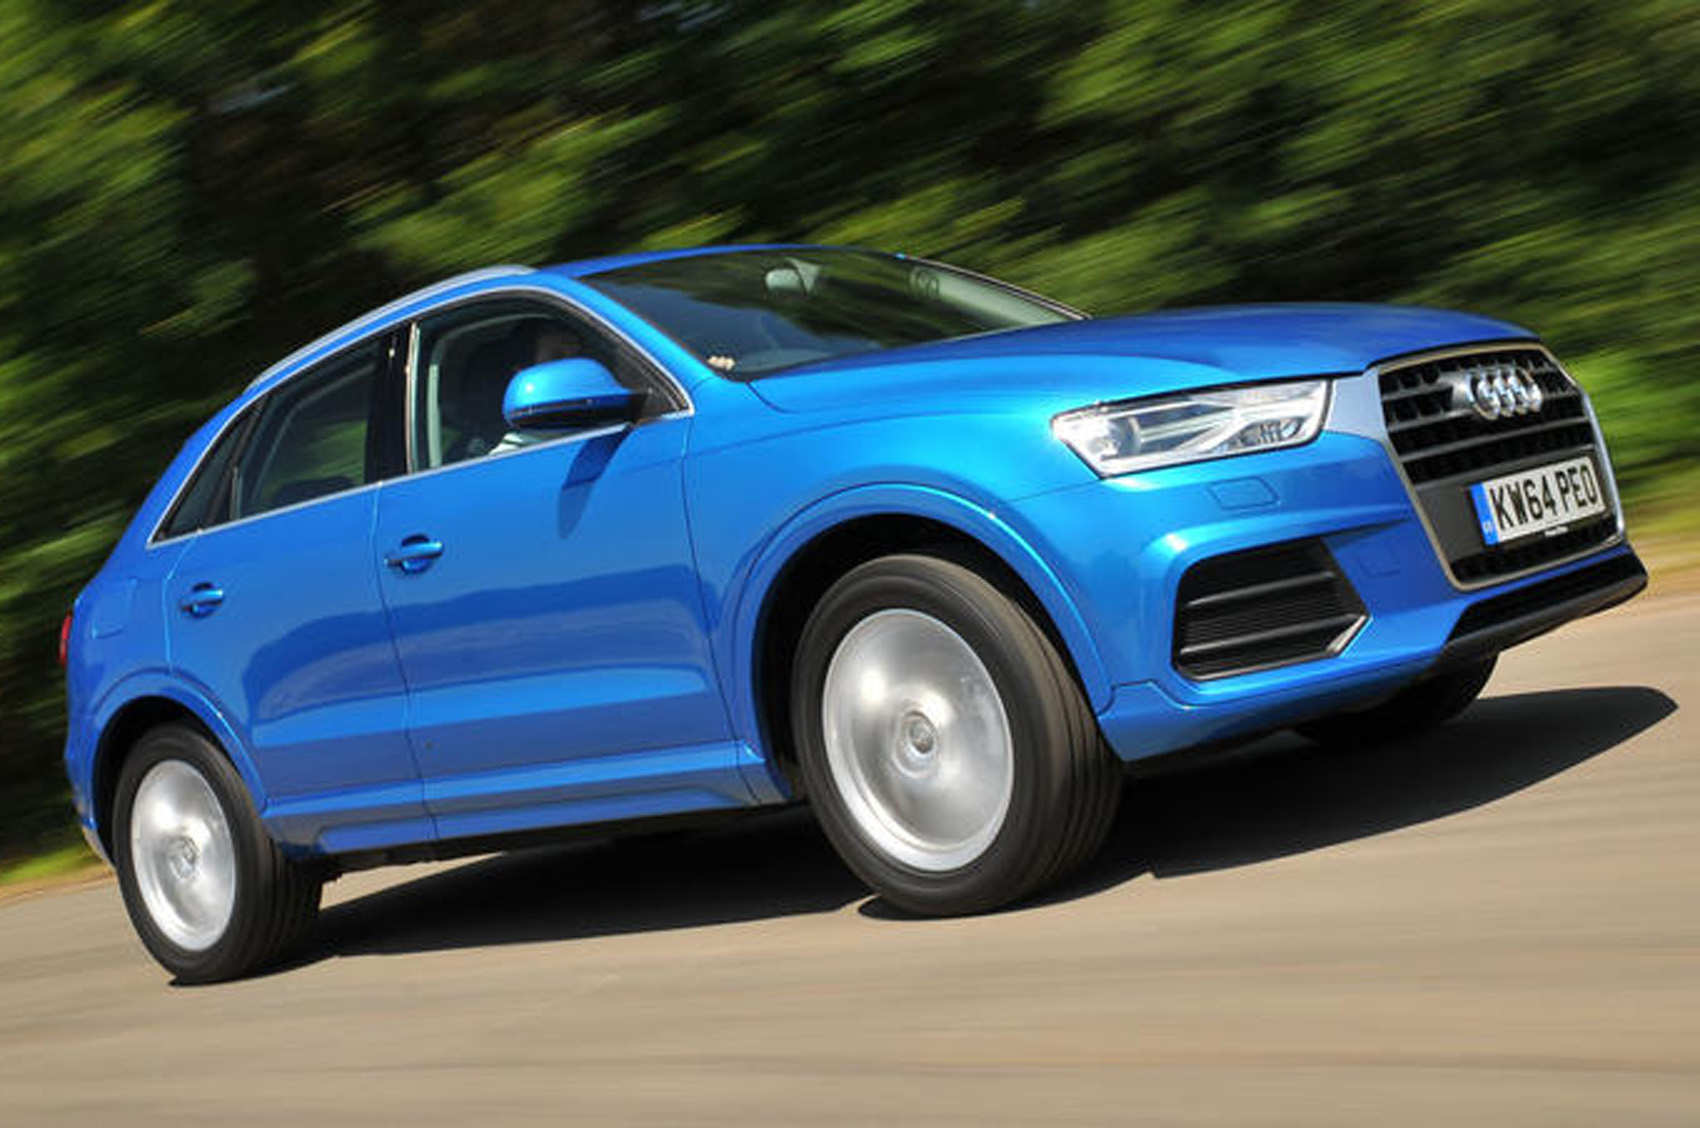 smallest was small as performancedrive in petrol beneath offers s it suv audi the tdi australia new company slotting quattro launched available just and review red video february